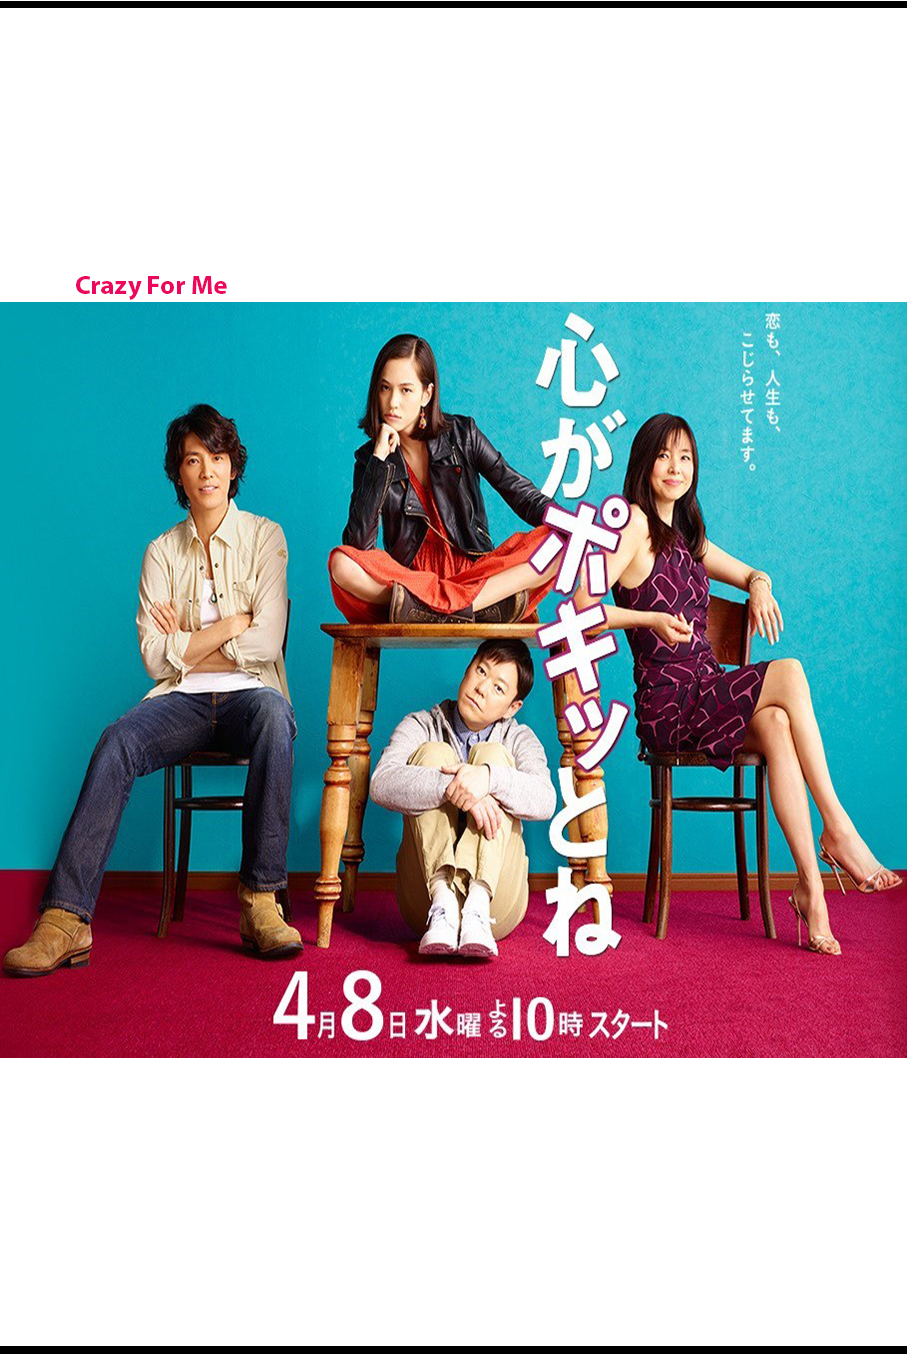 Crazy For Me aka. Kokoro Ga Pokitto Ne [2015 Japan Series] 10 eps END (2) Comedy, Romance